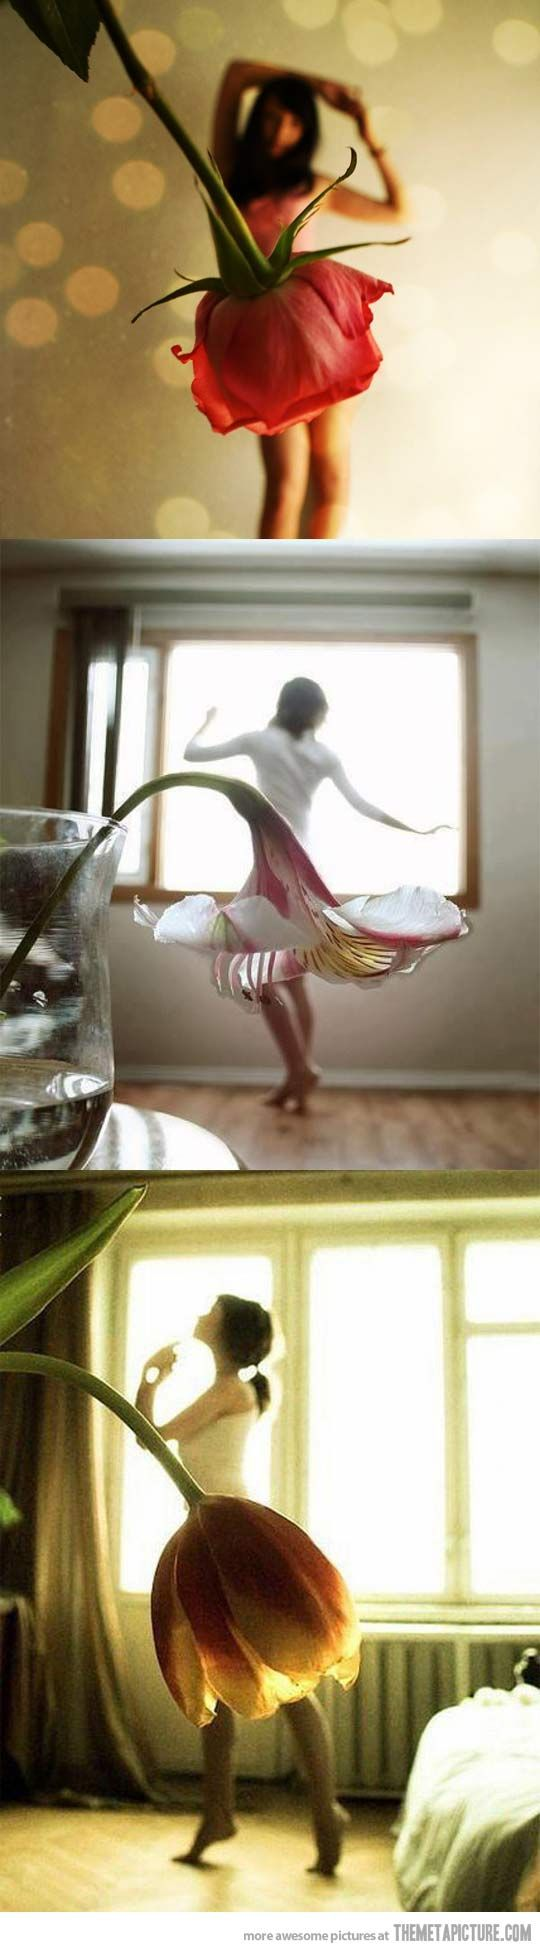 Three beautiful forced perspective photos…